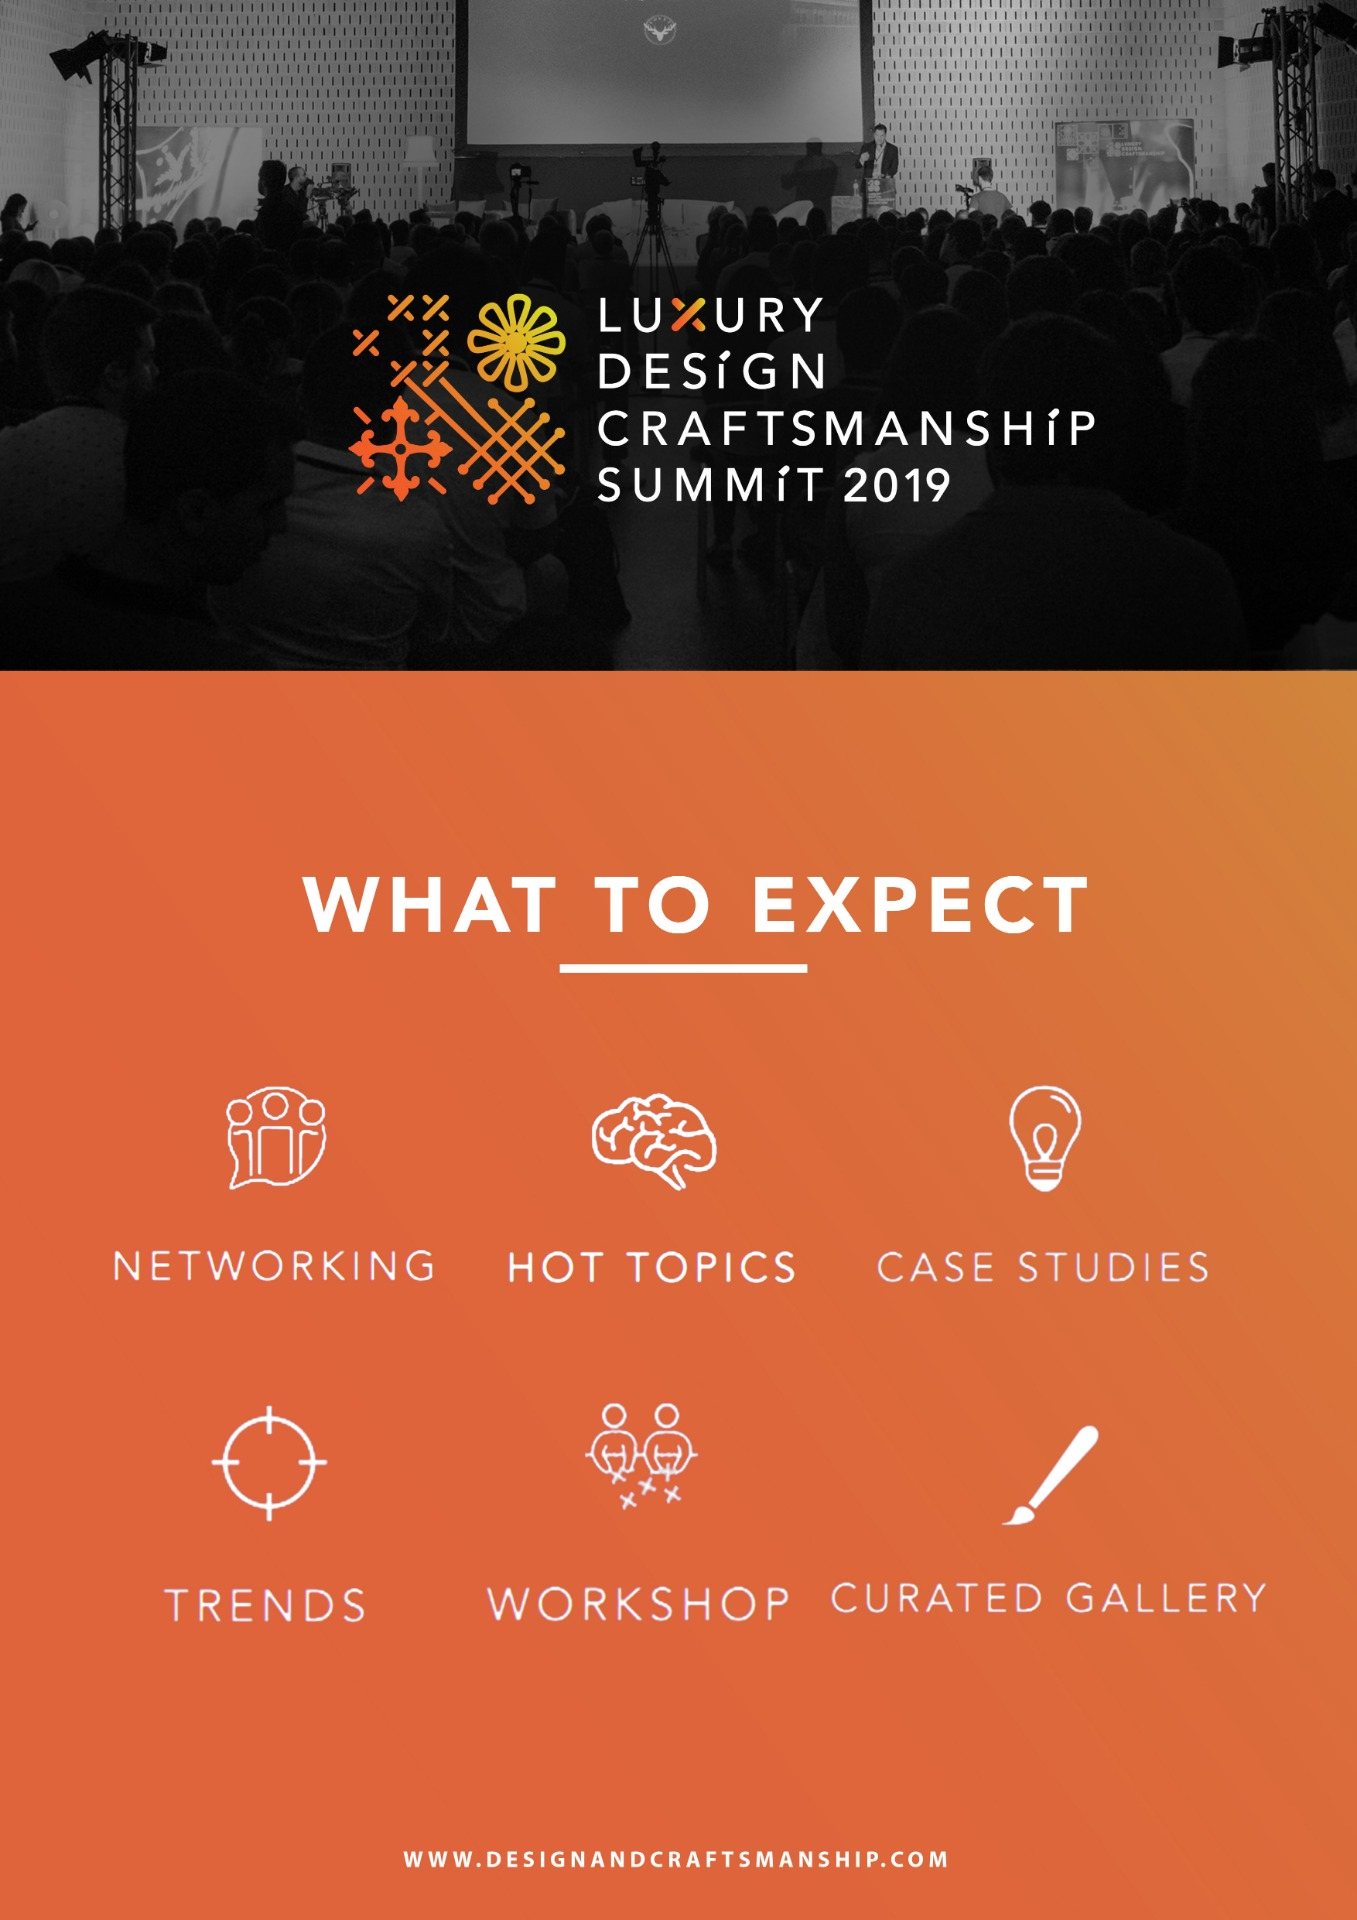 Celebrating Craftsmanship The Luxury Design+Craftsmanship Summit 2019 (1) luxury design Luxury Design+Craftsmanship Summit 2019: Celebrating Arts & Crafts in Porto Celebrating Craftsmanship The Luxury DesignCraftsmanship Summit 2019 1